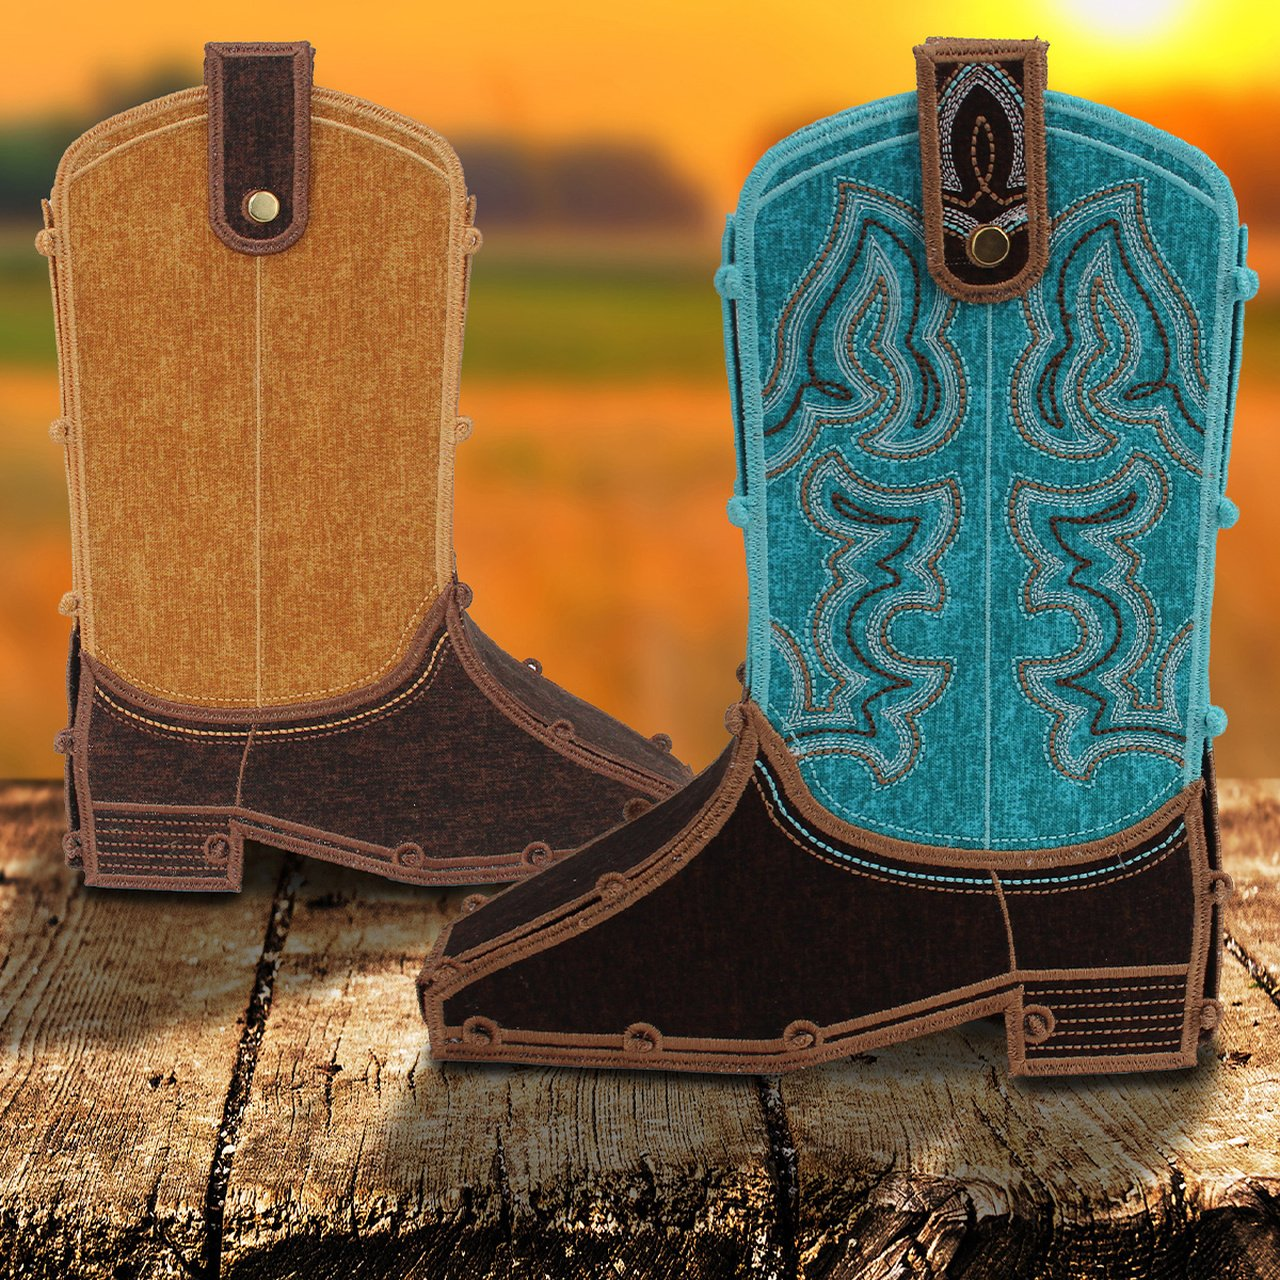 Freestanding Cowboy Boots oesd